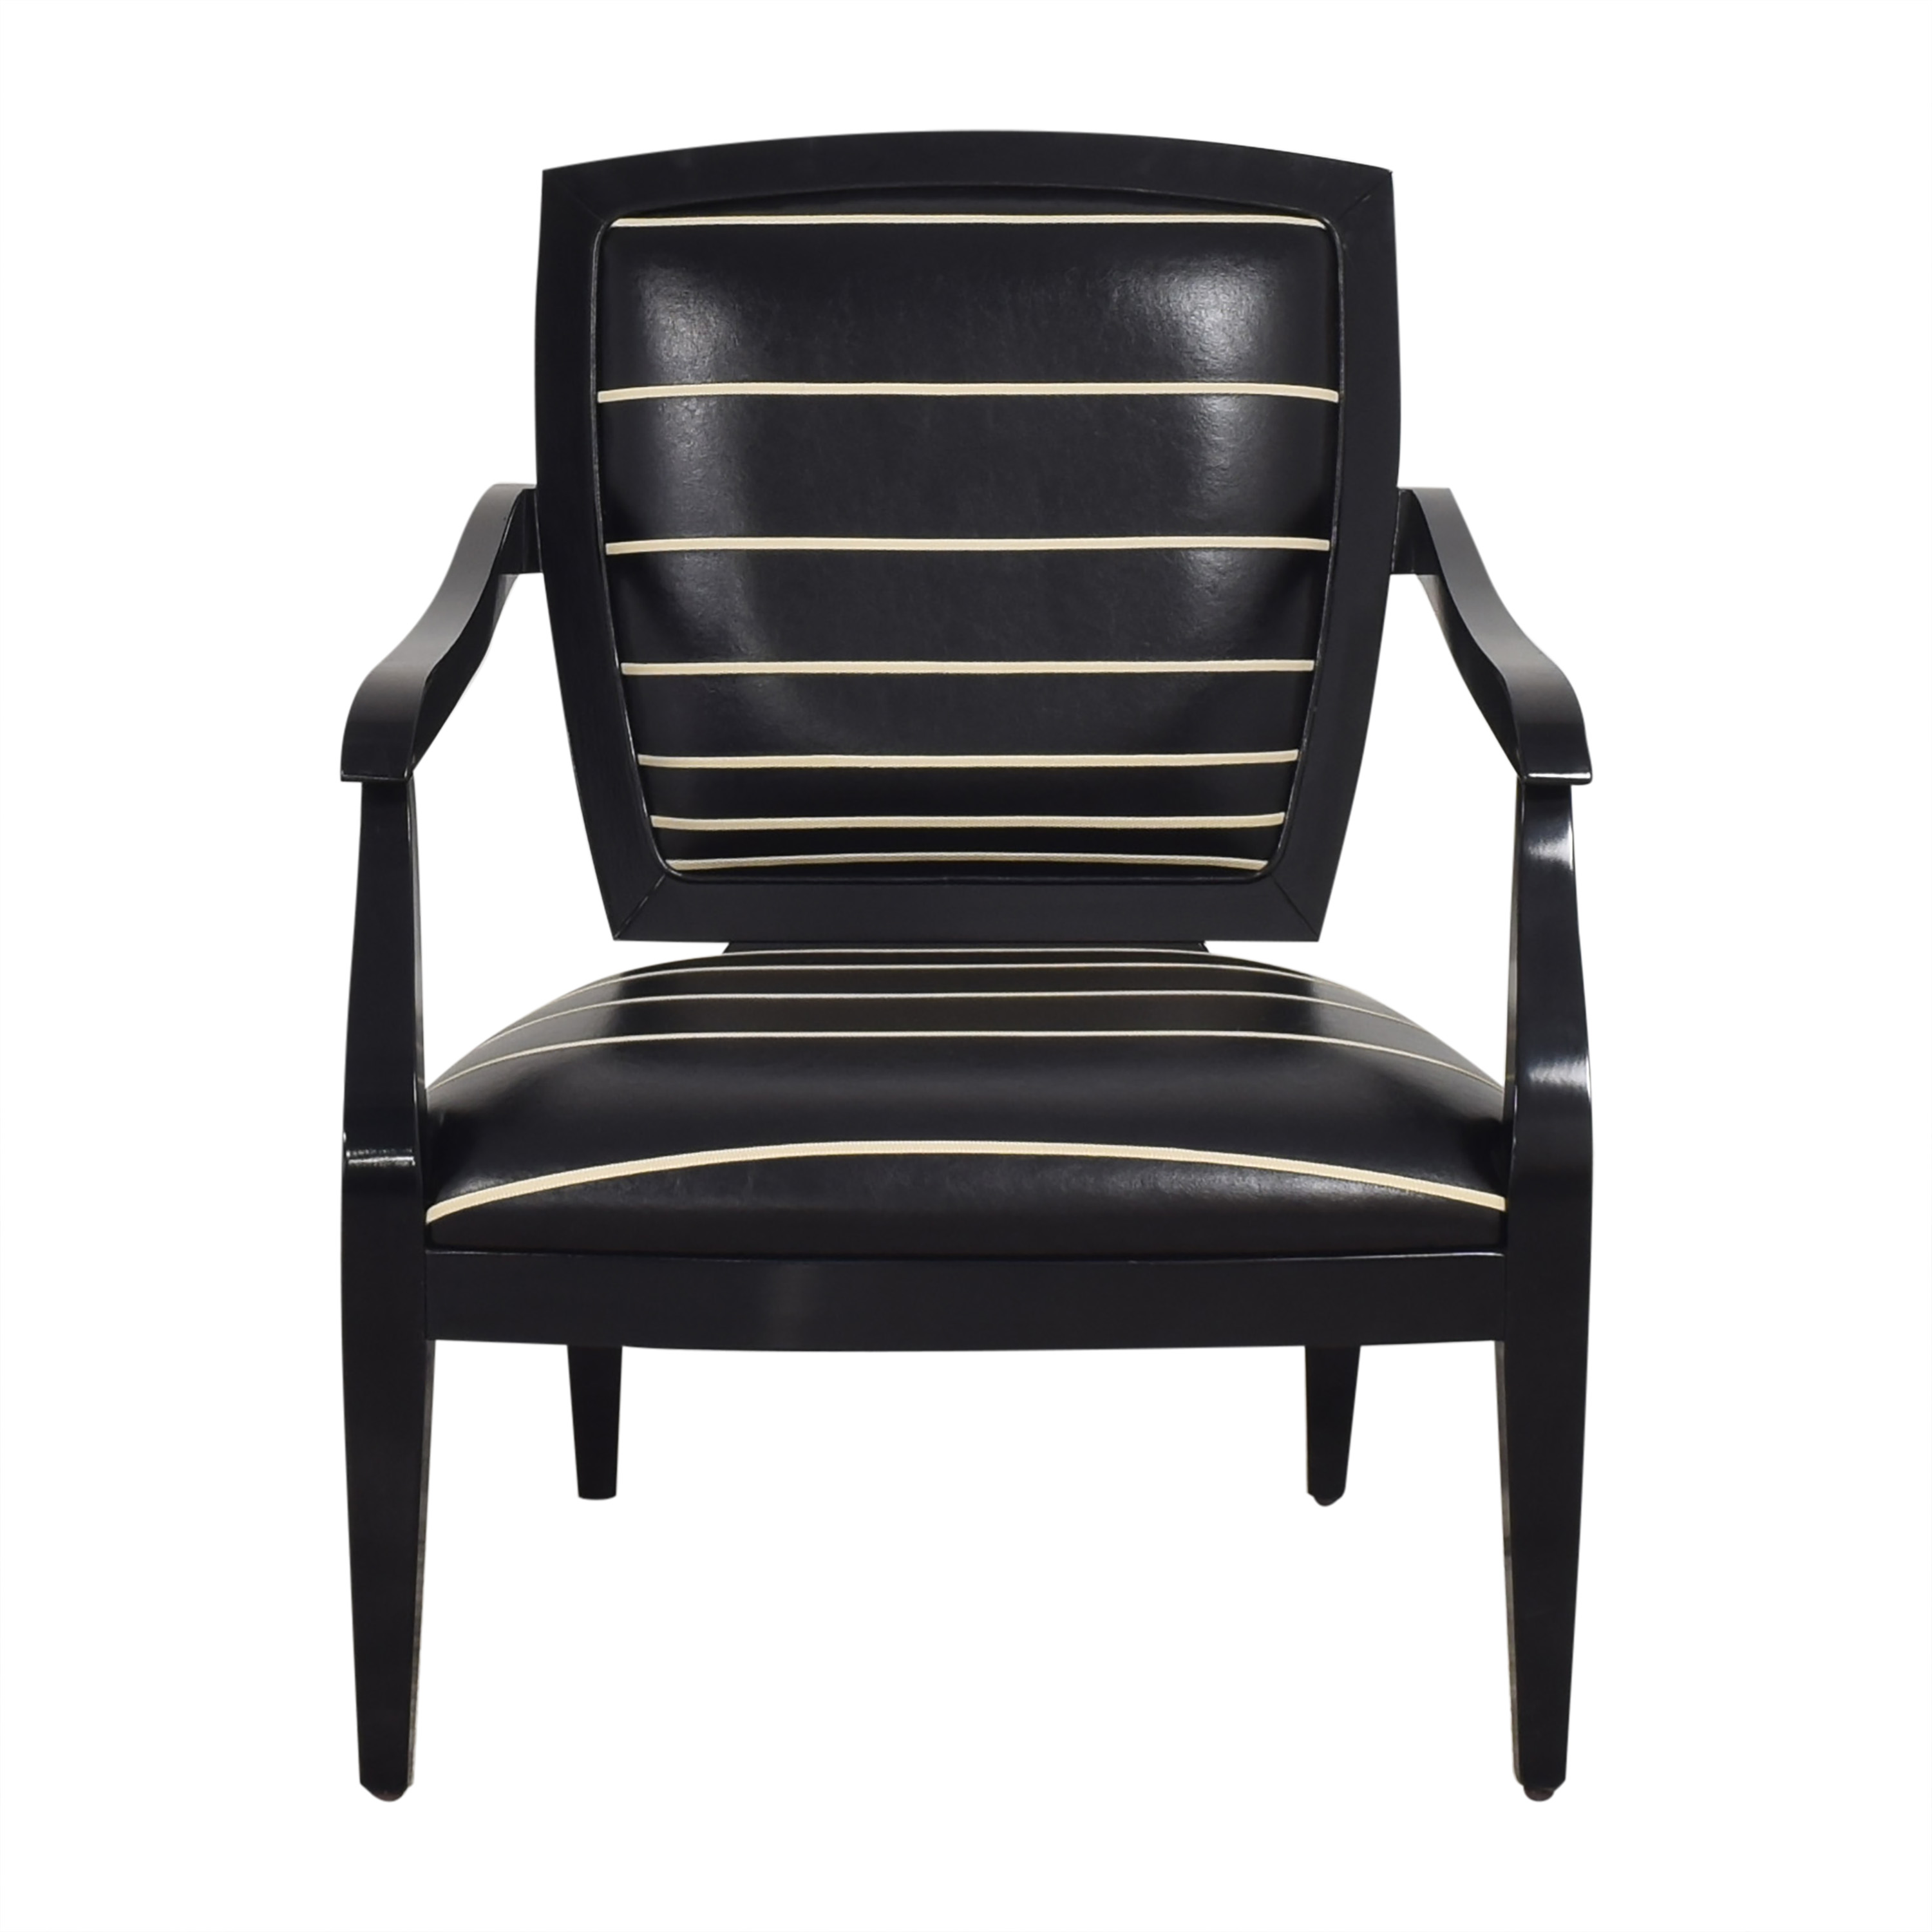 buy Smania Smania Striped Accent Chair online